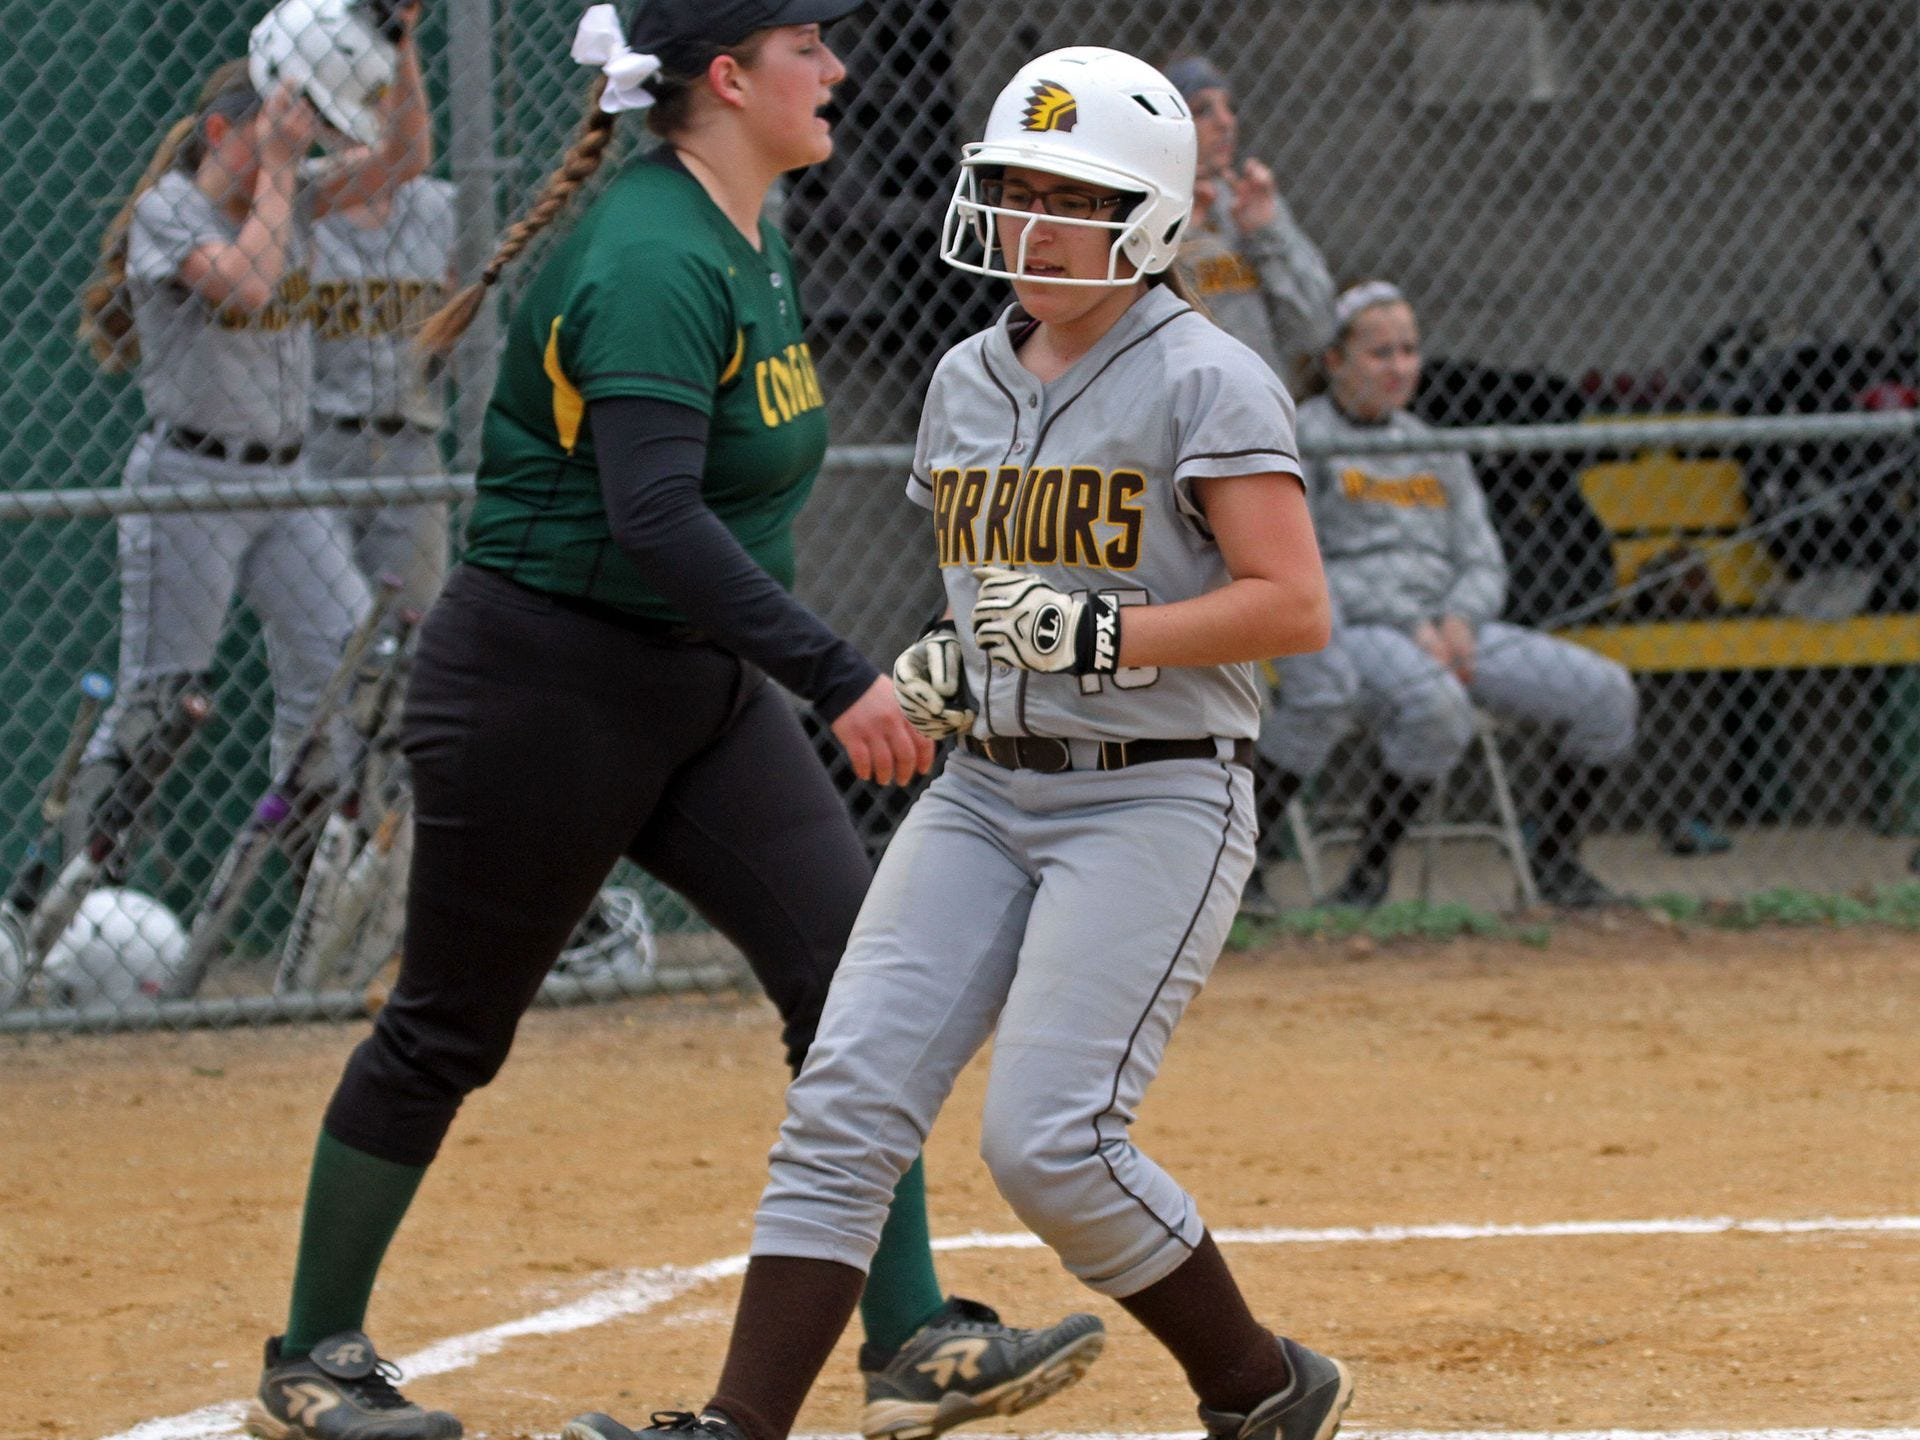 Watchung Hills' Annie Suitovsky was one of several Warriora who posted a big day Tuesday as WH beat then-undereated Hillsborough